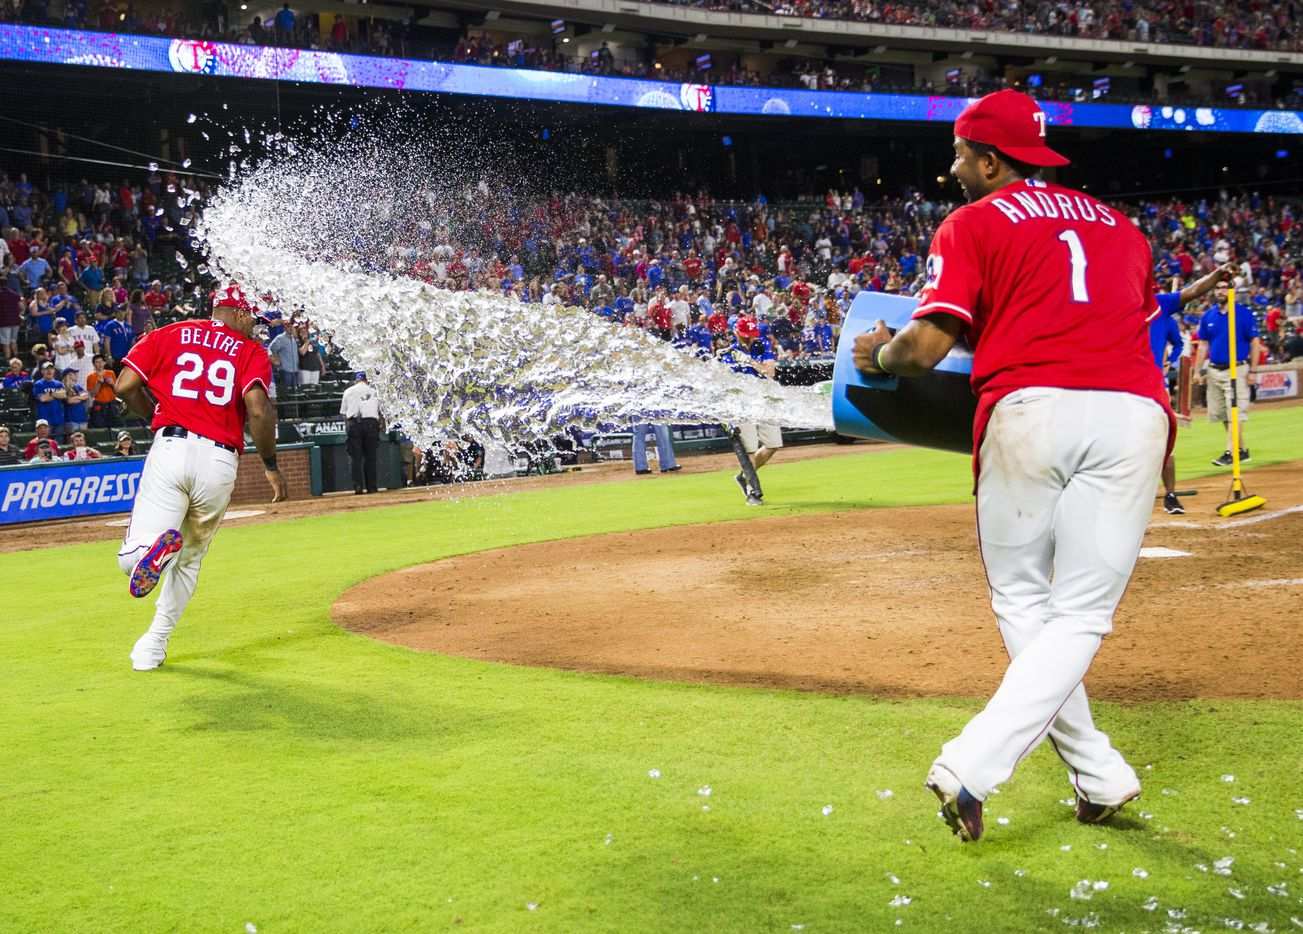 Texas Rangers third baseman Adrian Beltre (29) runs away from a Gatorade dump by shortstop Elvis Andrus (1) after a 7-3 win over the Seattle Mariners on Friday, June 3, 2016 at Globe Life Park in Arlington, Texas.  (Ashley Landis/The Dallas Morning News)